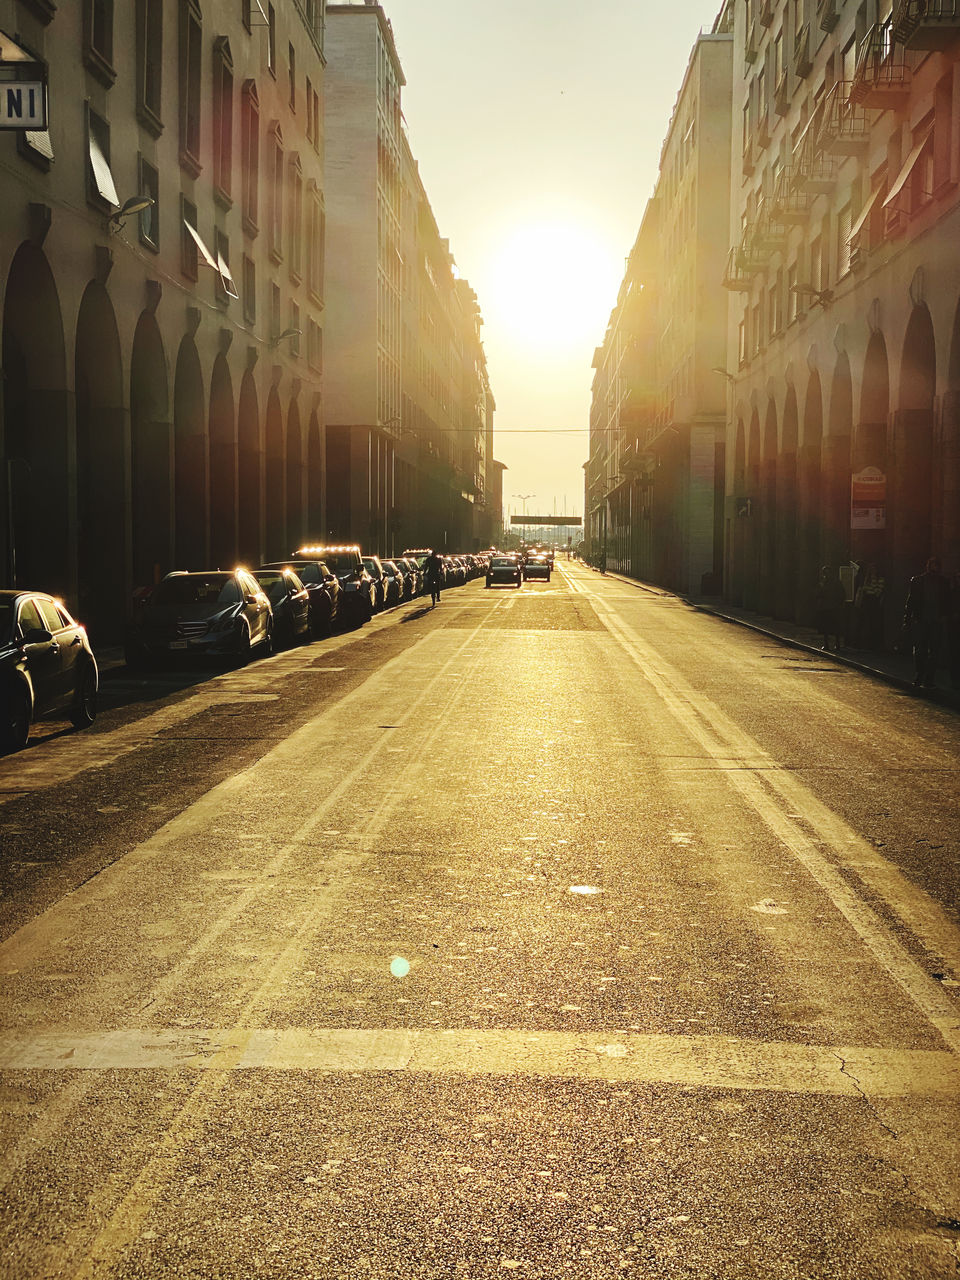 city, transportation, car, street, building exterior, motor vehicle, architecture, road, built structure, direction, mode of transportation, the way forward, land vehicle, sunlight, sky, nature, city street, building, symbol, diminishing perspective, no people, outdoors